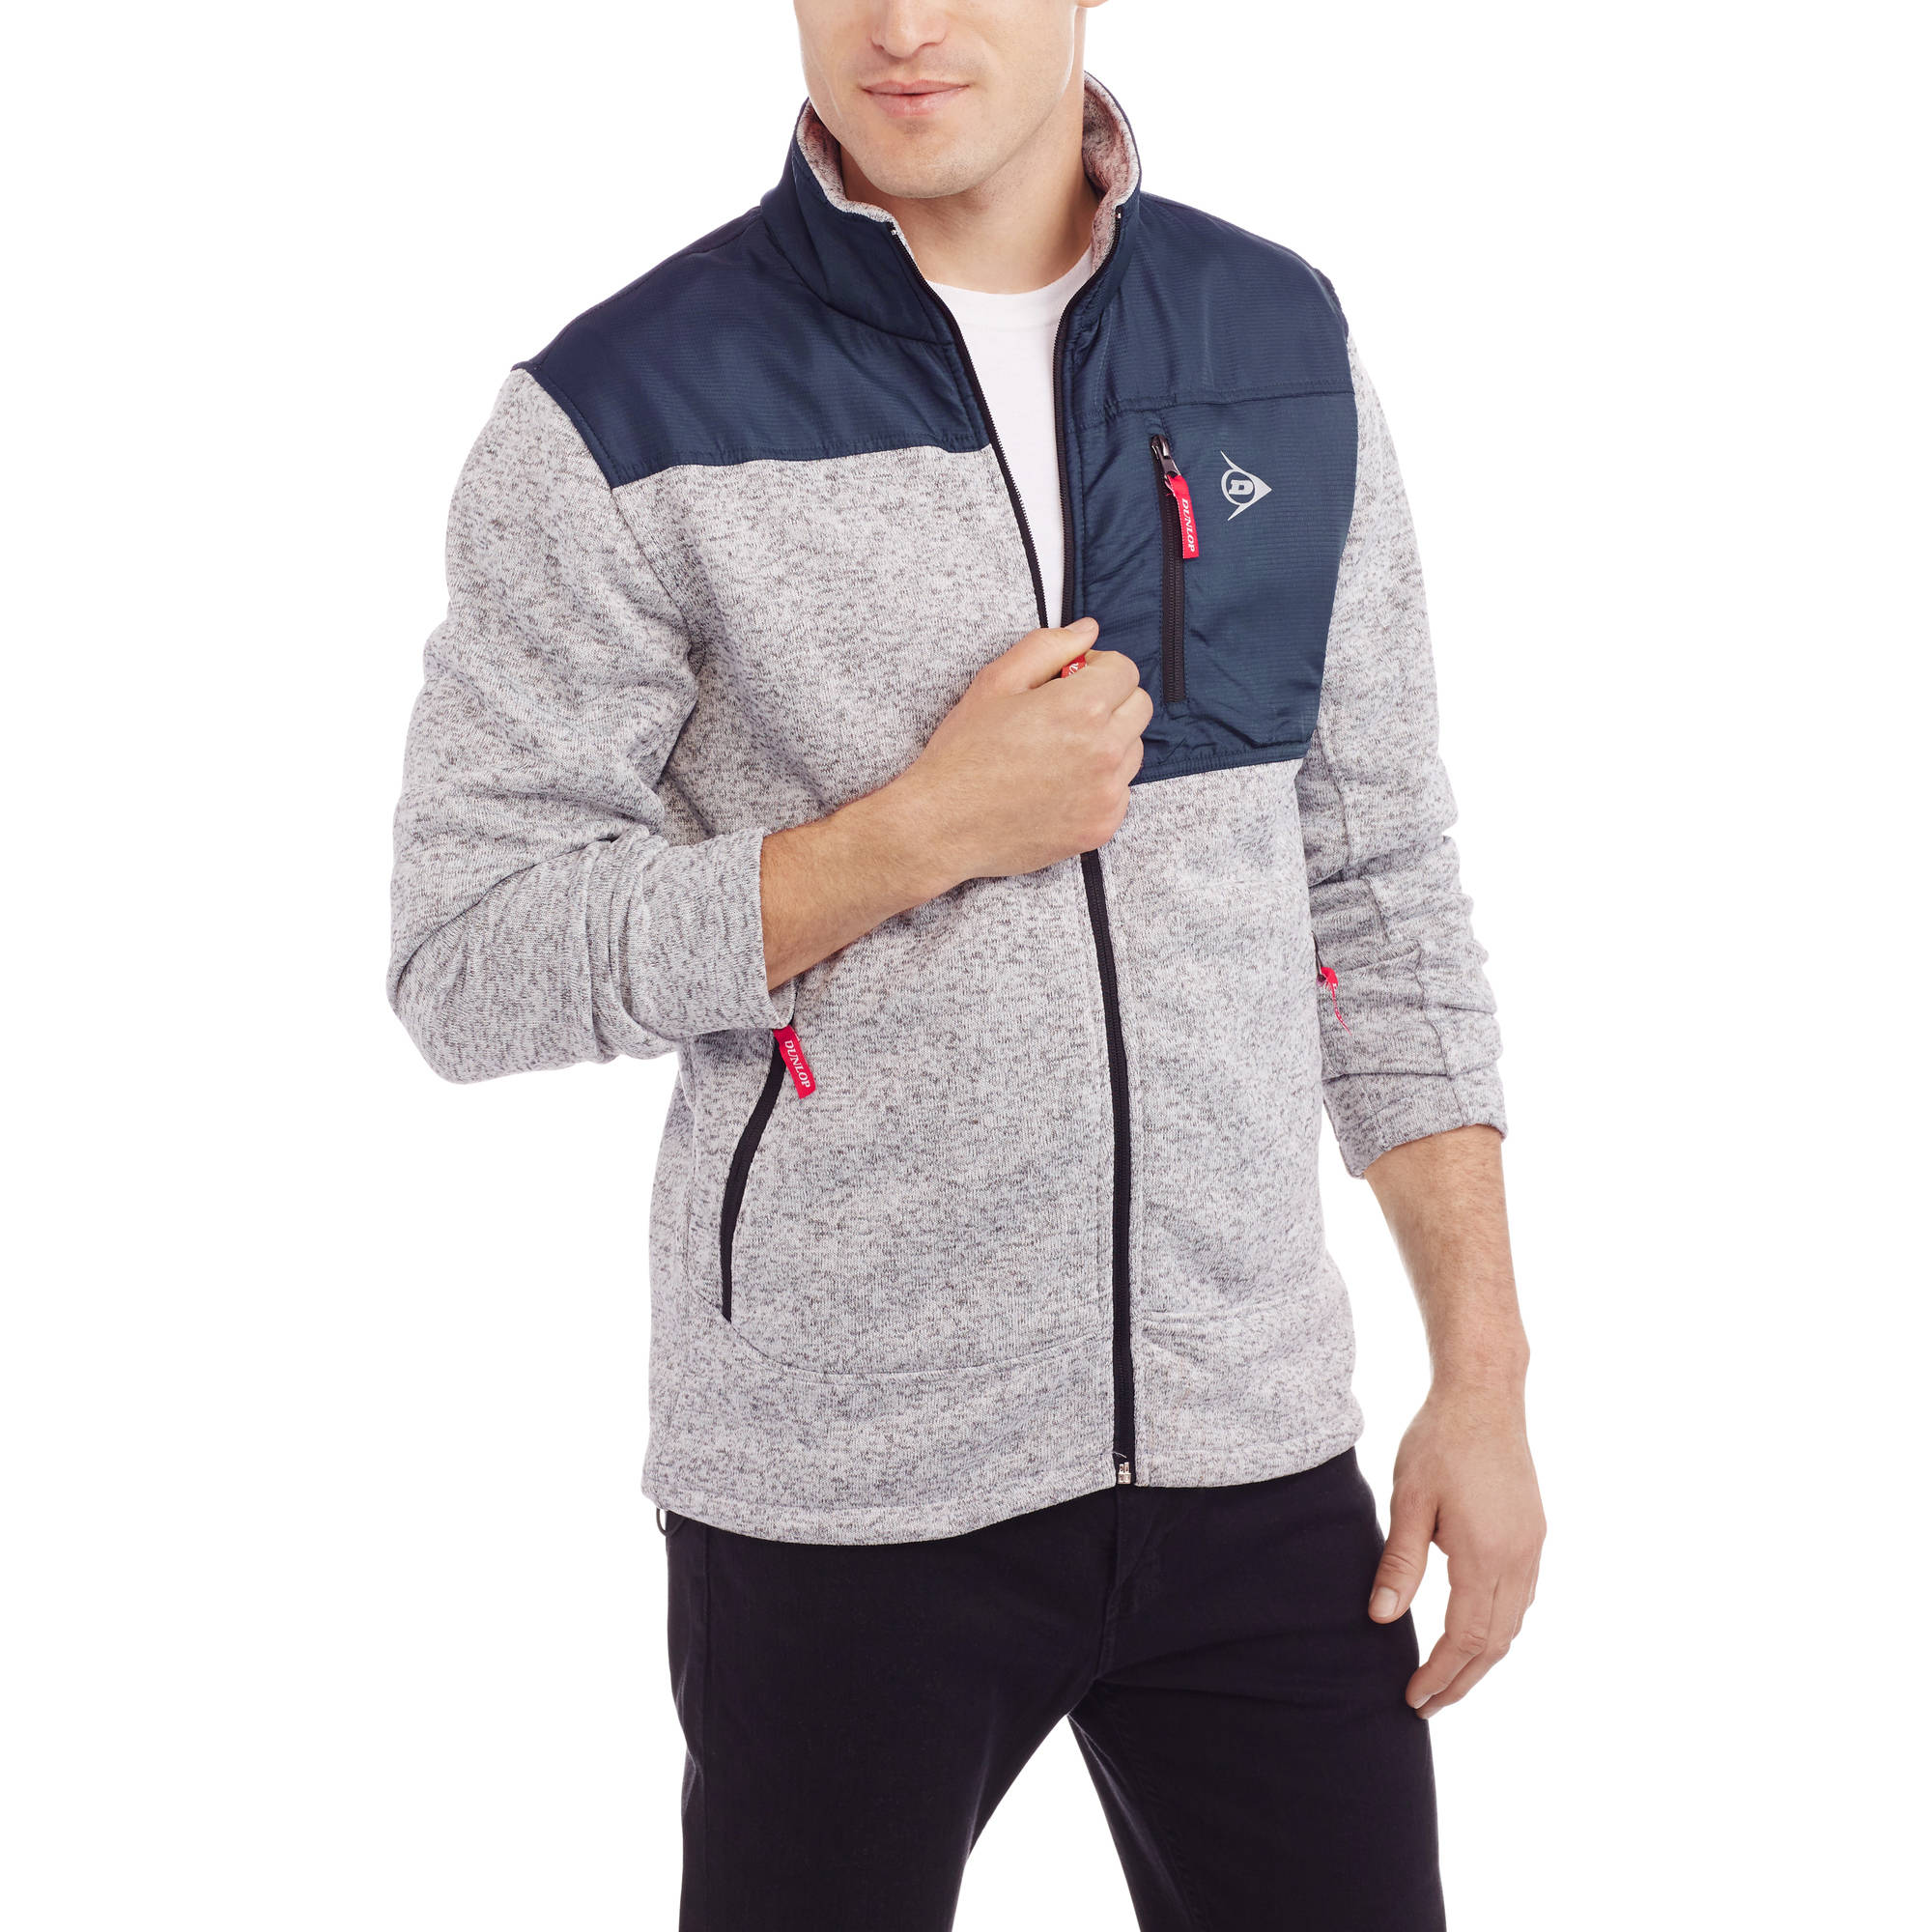 Dunlop Men's Lightweight Marled Fleece Full Zip Jacket